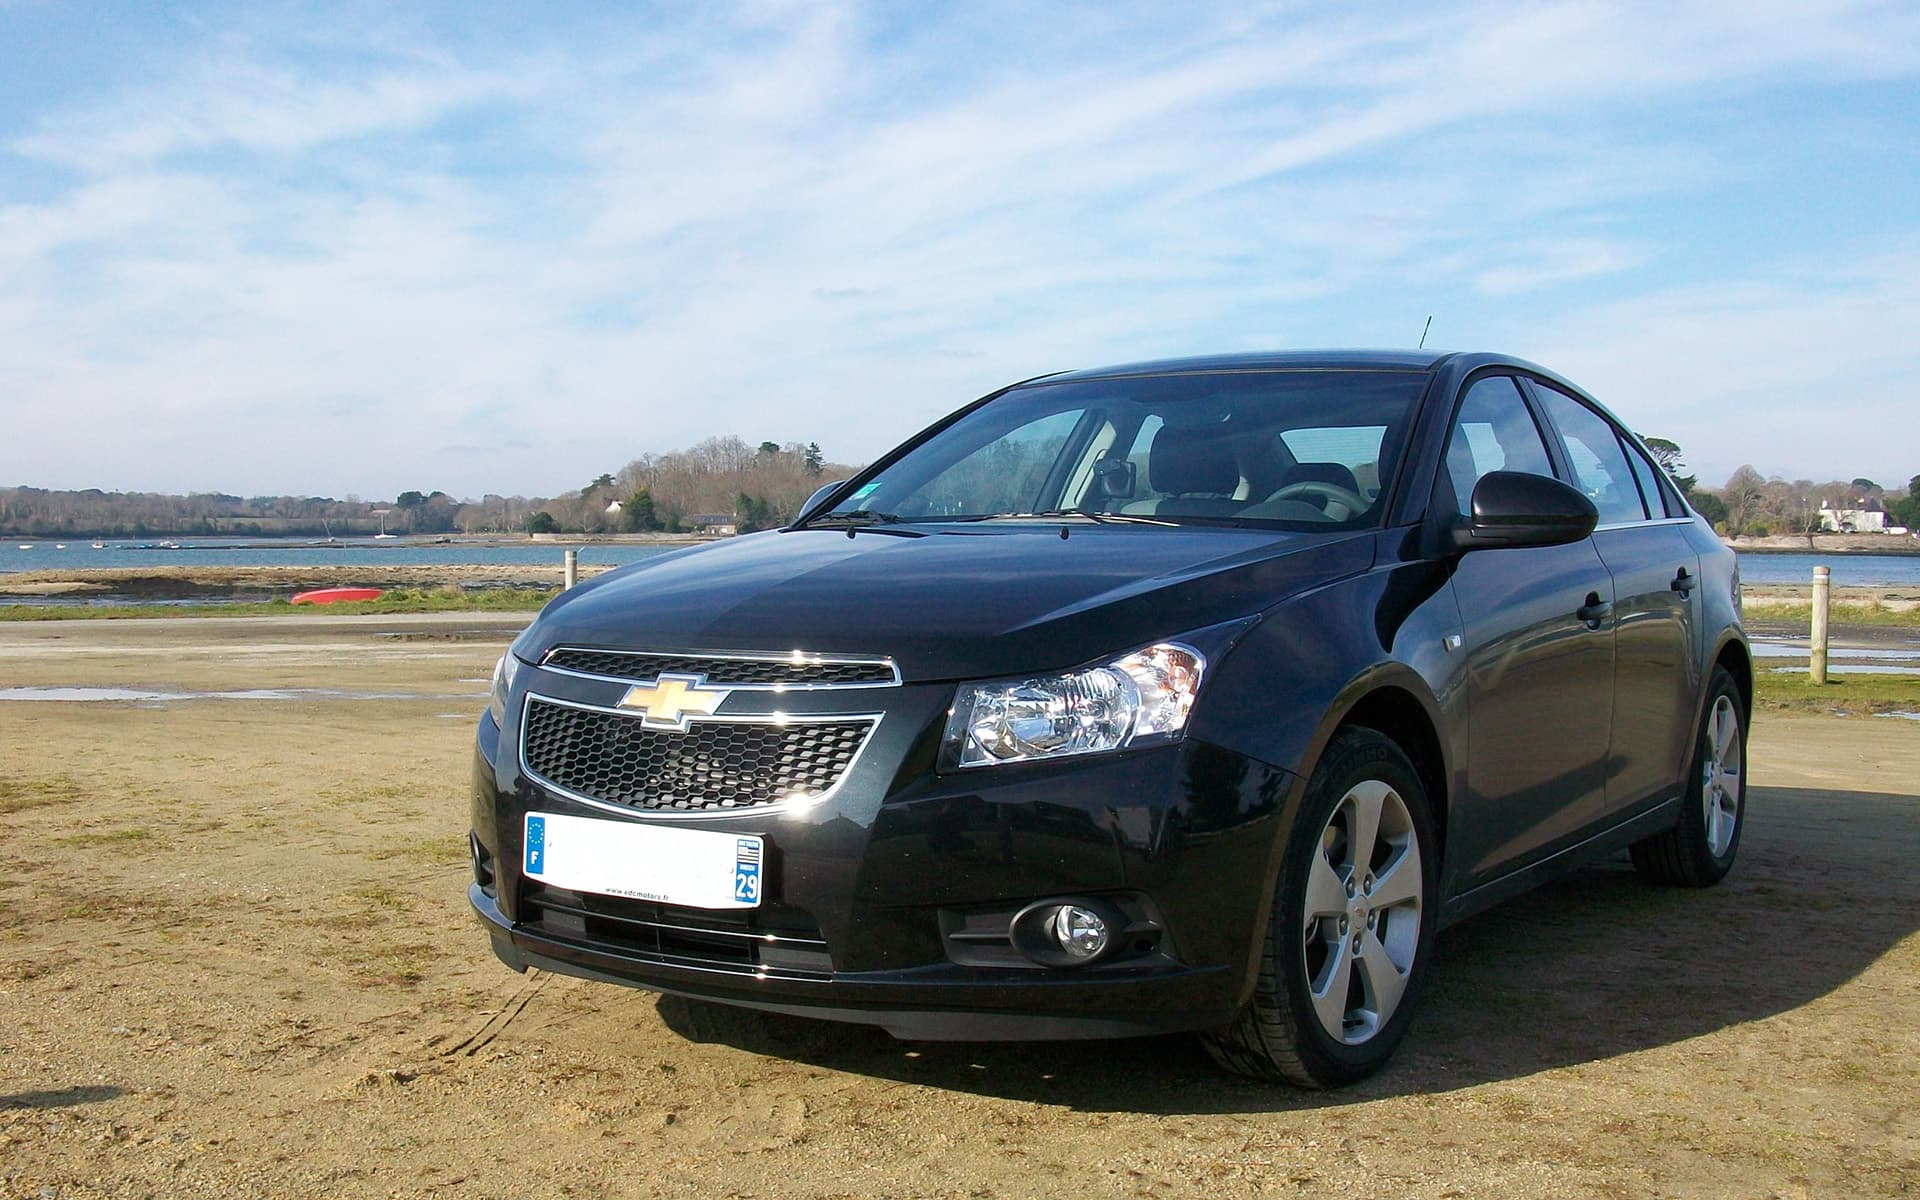 30  Chevrolet Cruze wallpapers HD High Quality free Download